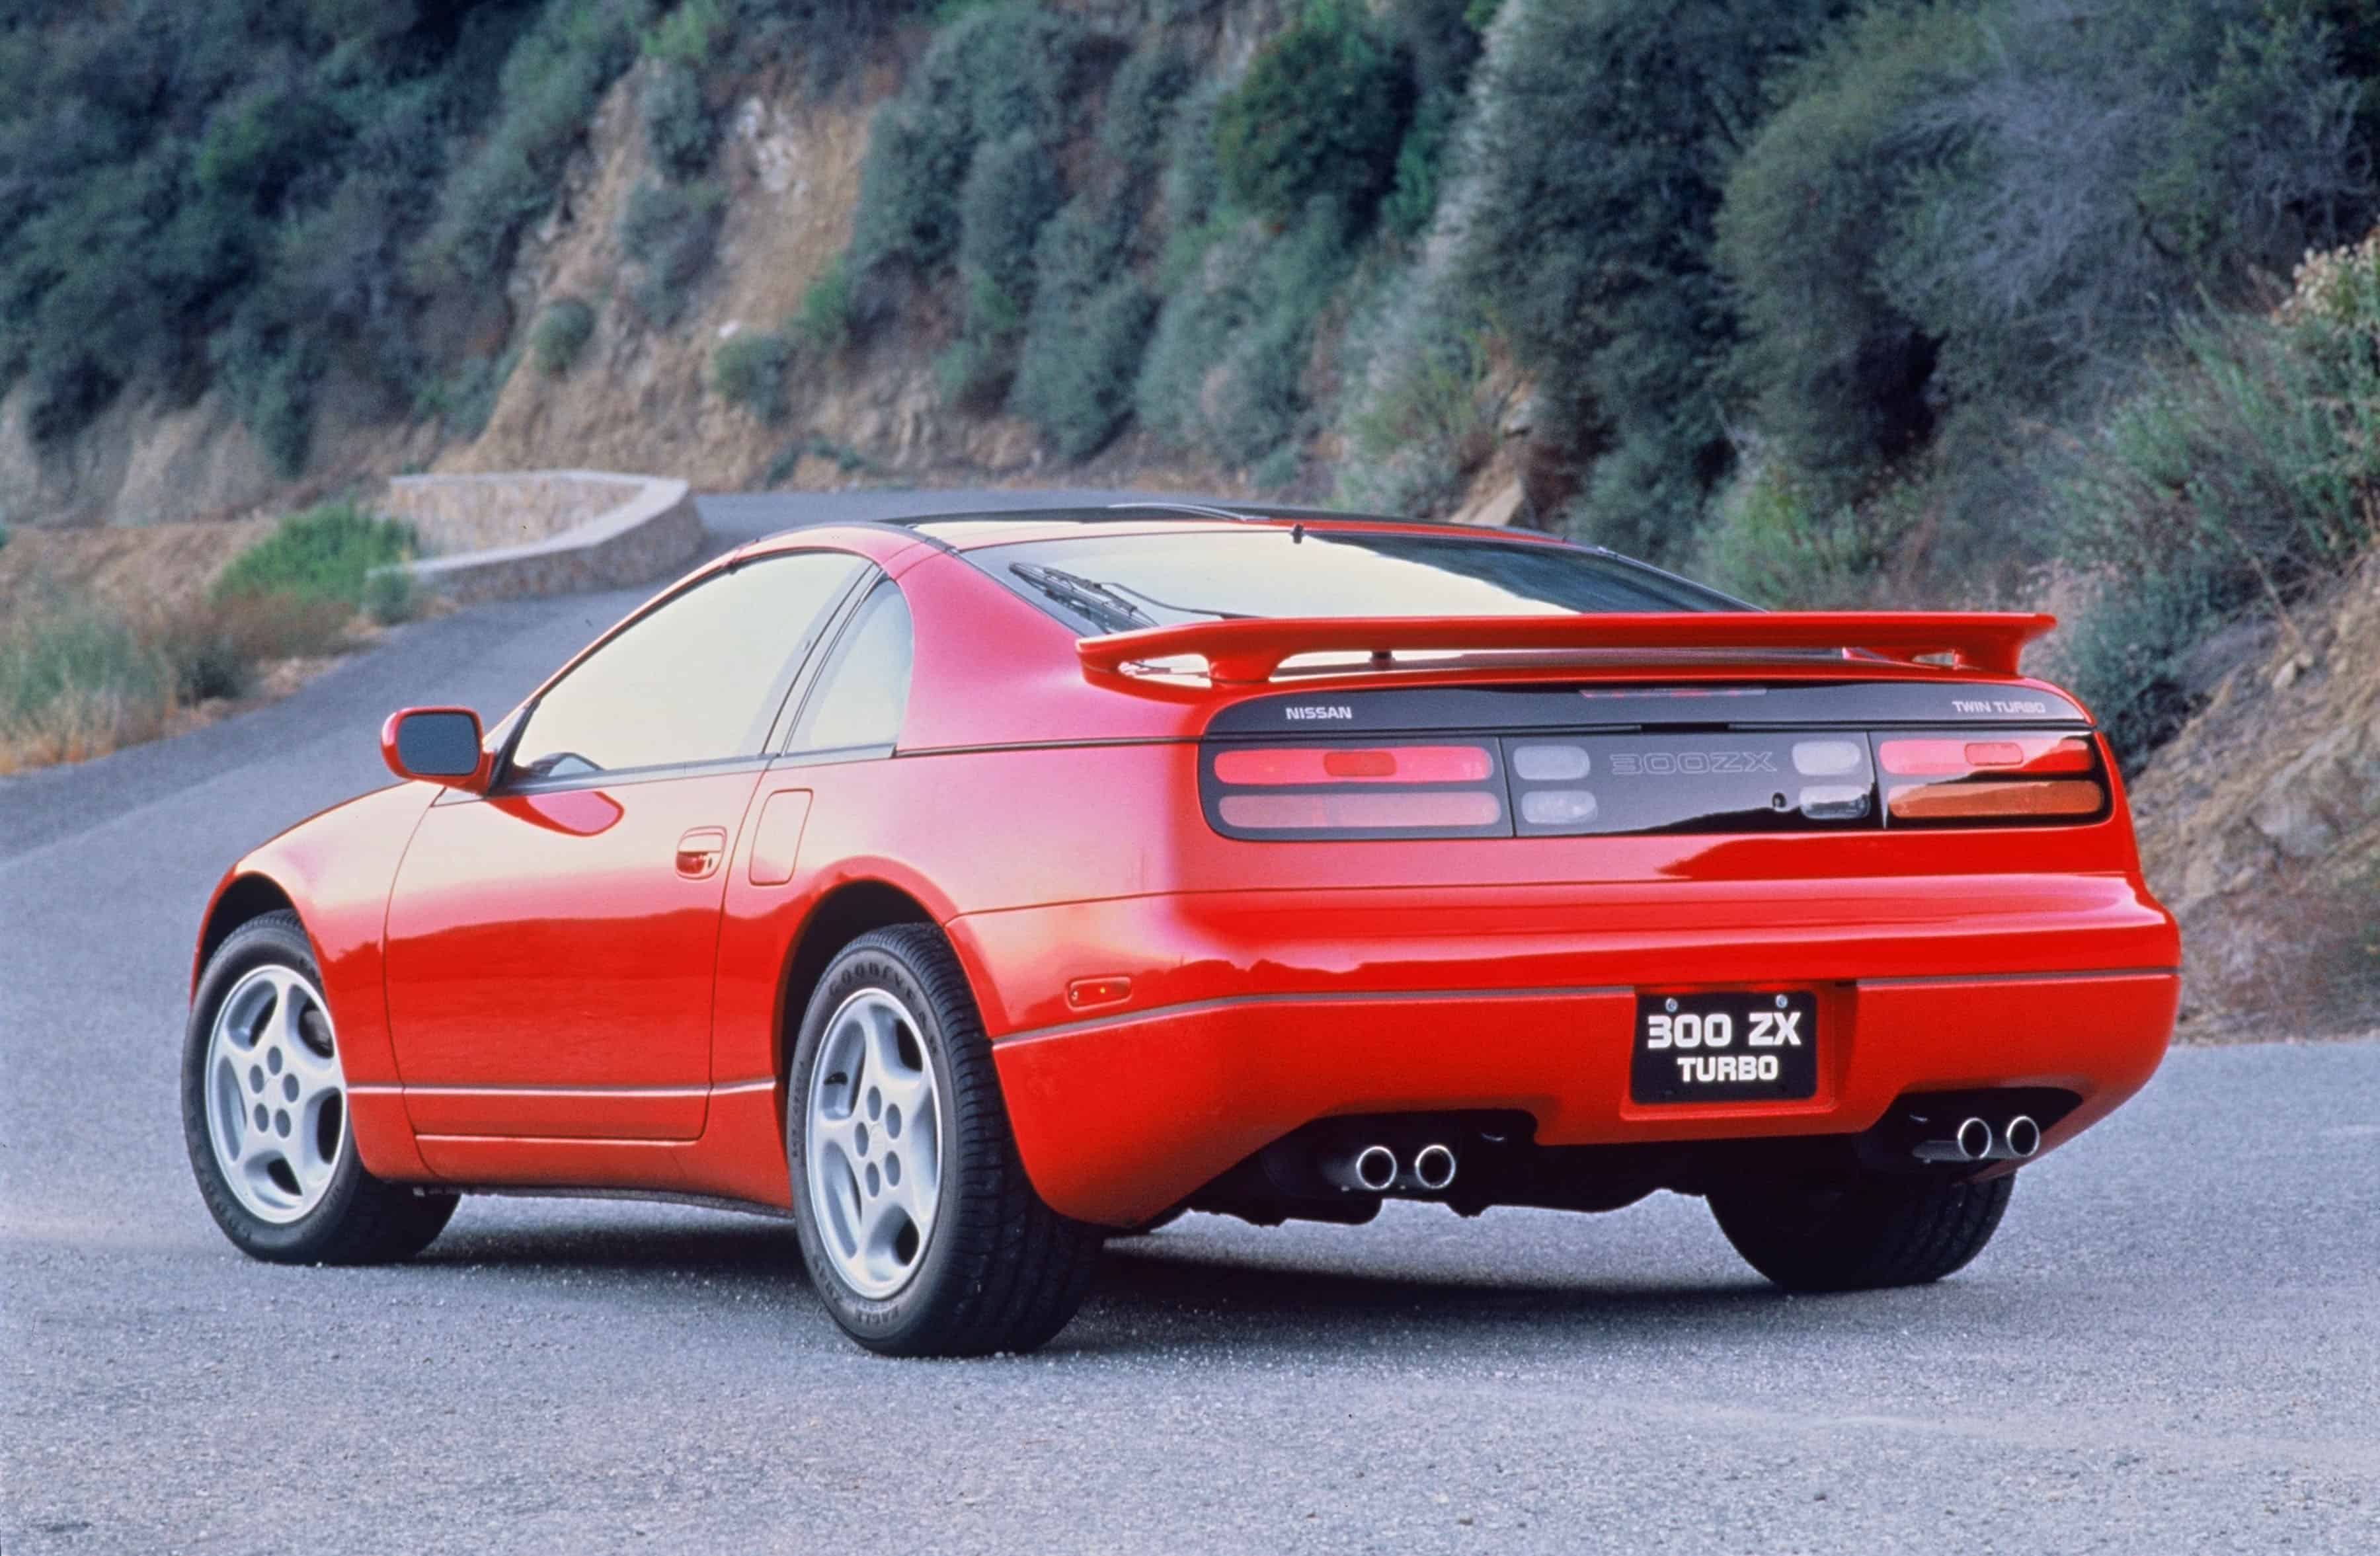 Nissan 300ZX - left rear view